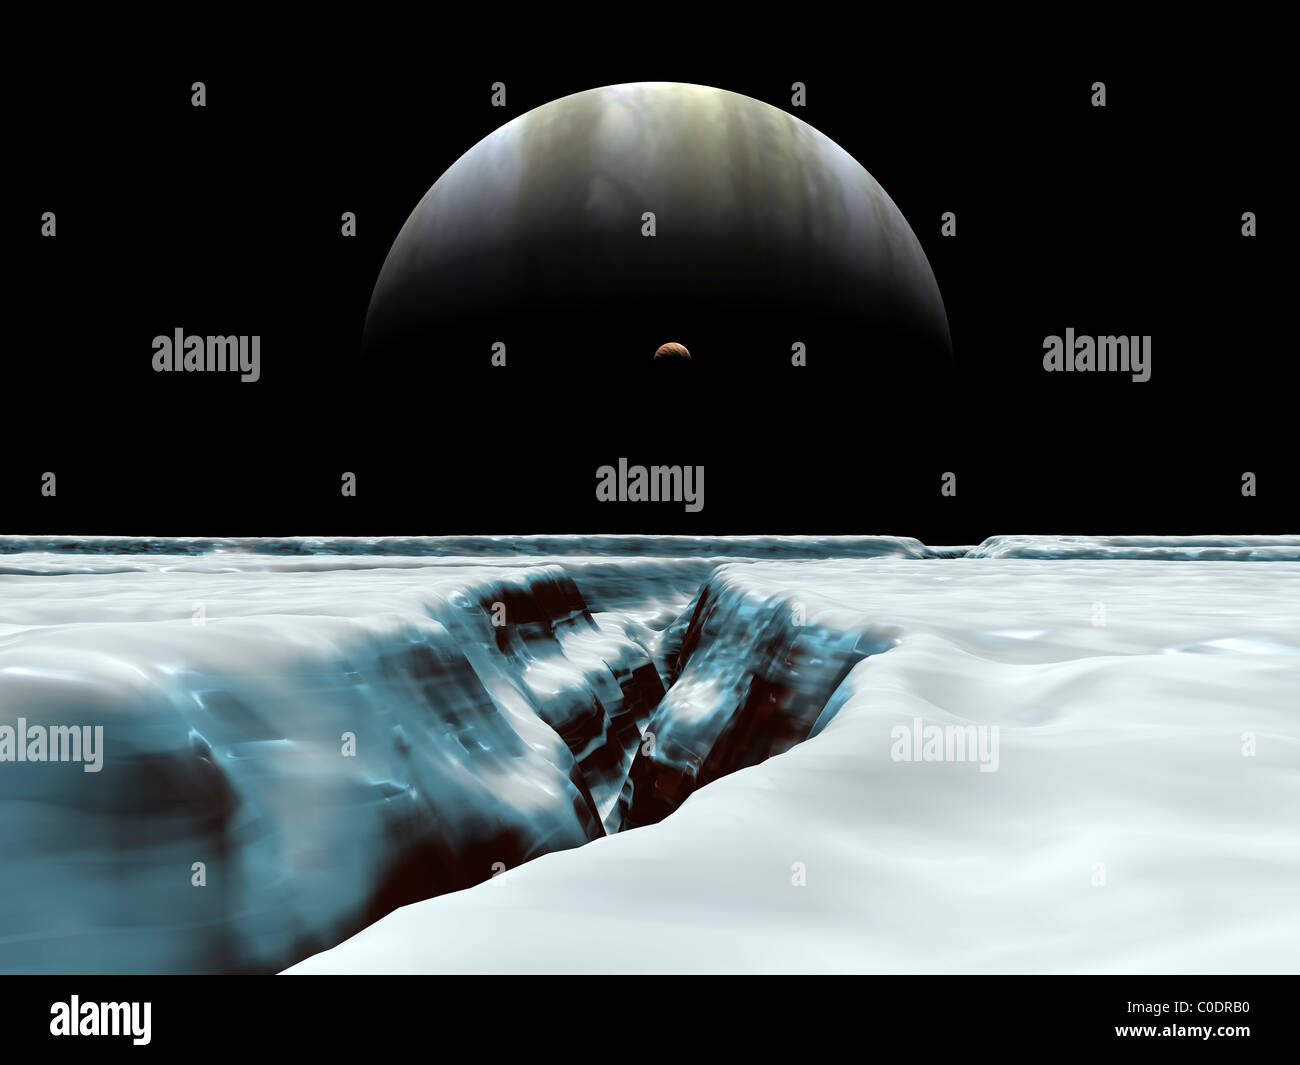 A crescent Jupiter and volcanic satellite, Io, hover over the horizon of the icy moon of Europa. - Stock Image